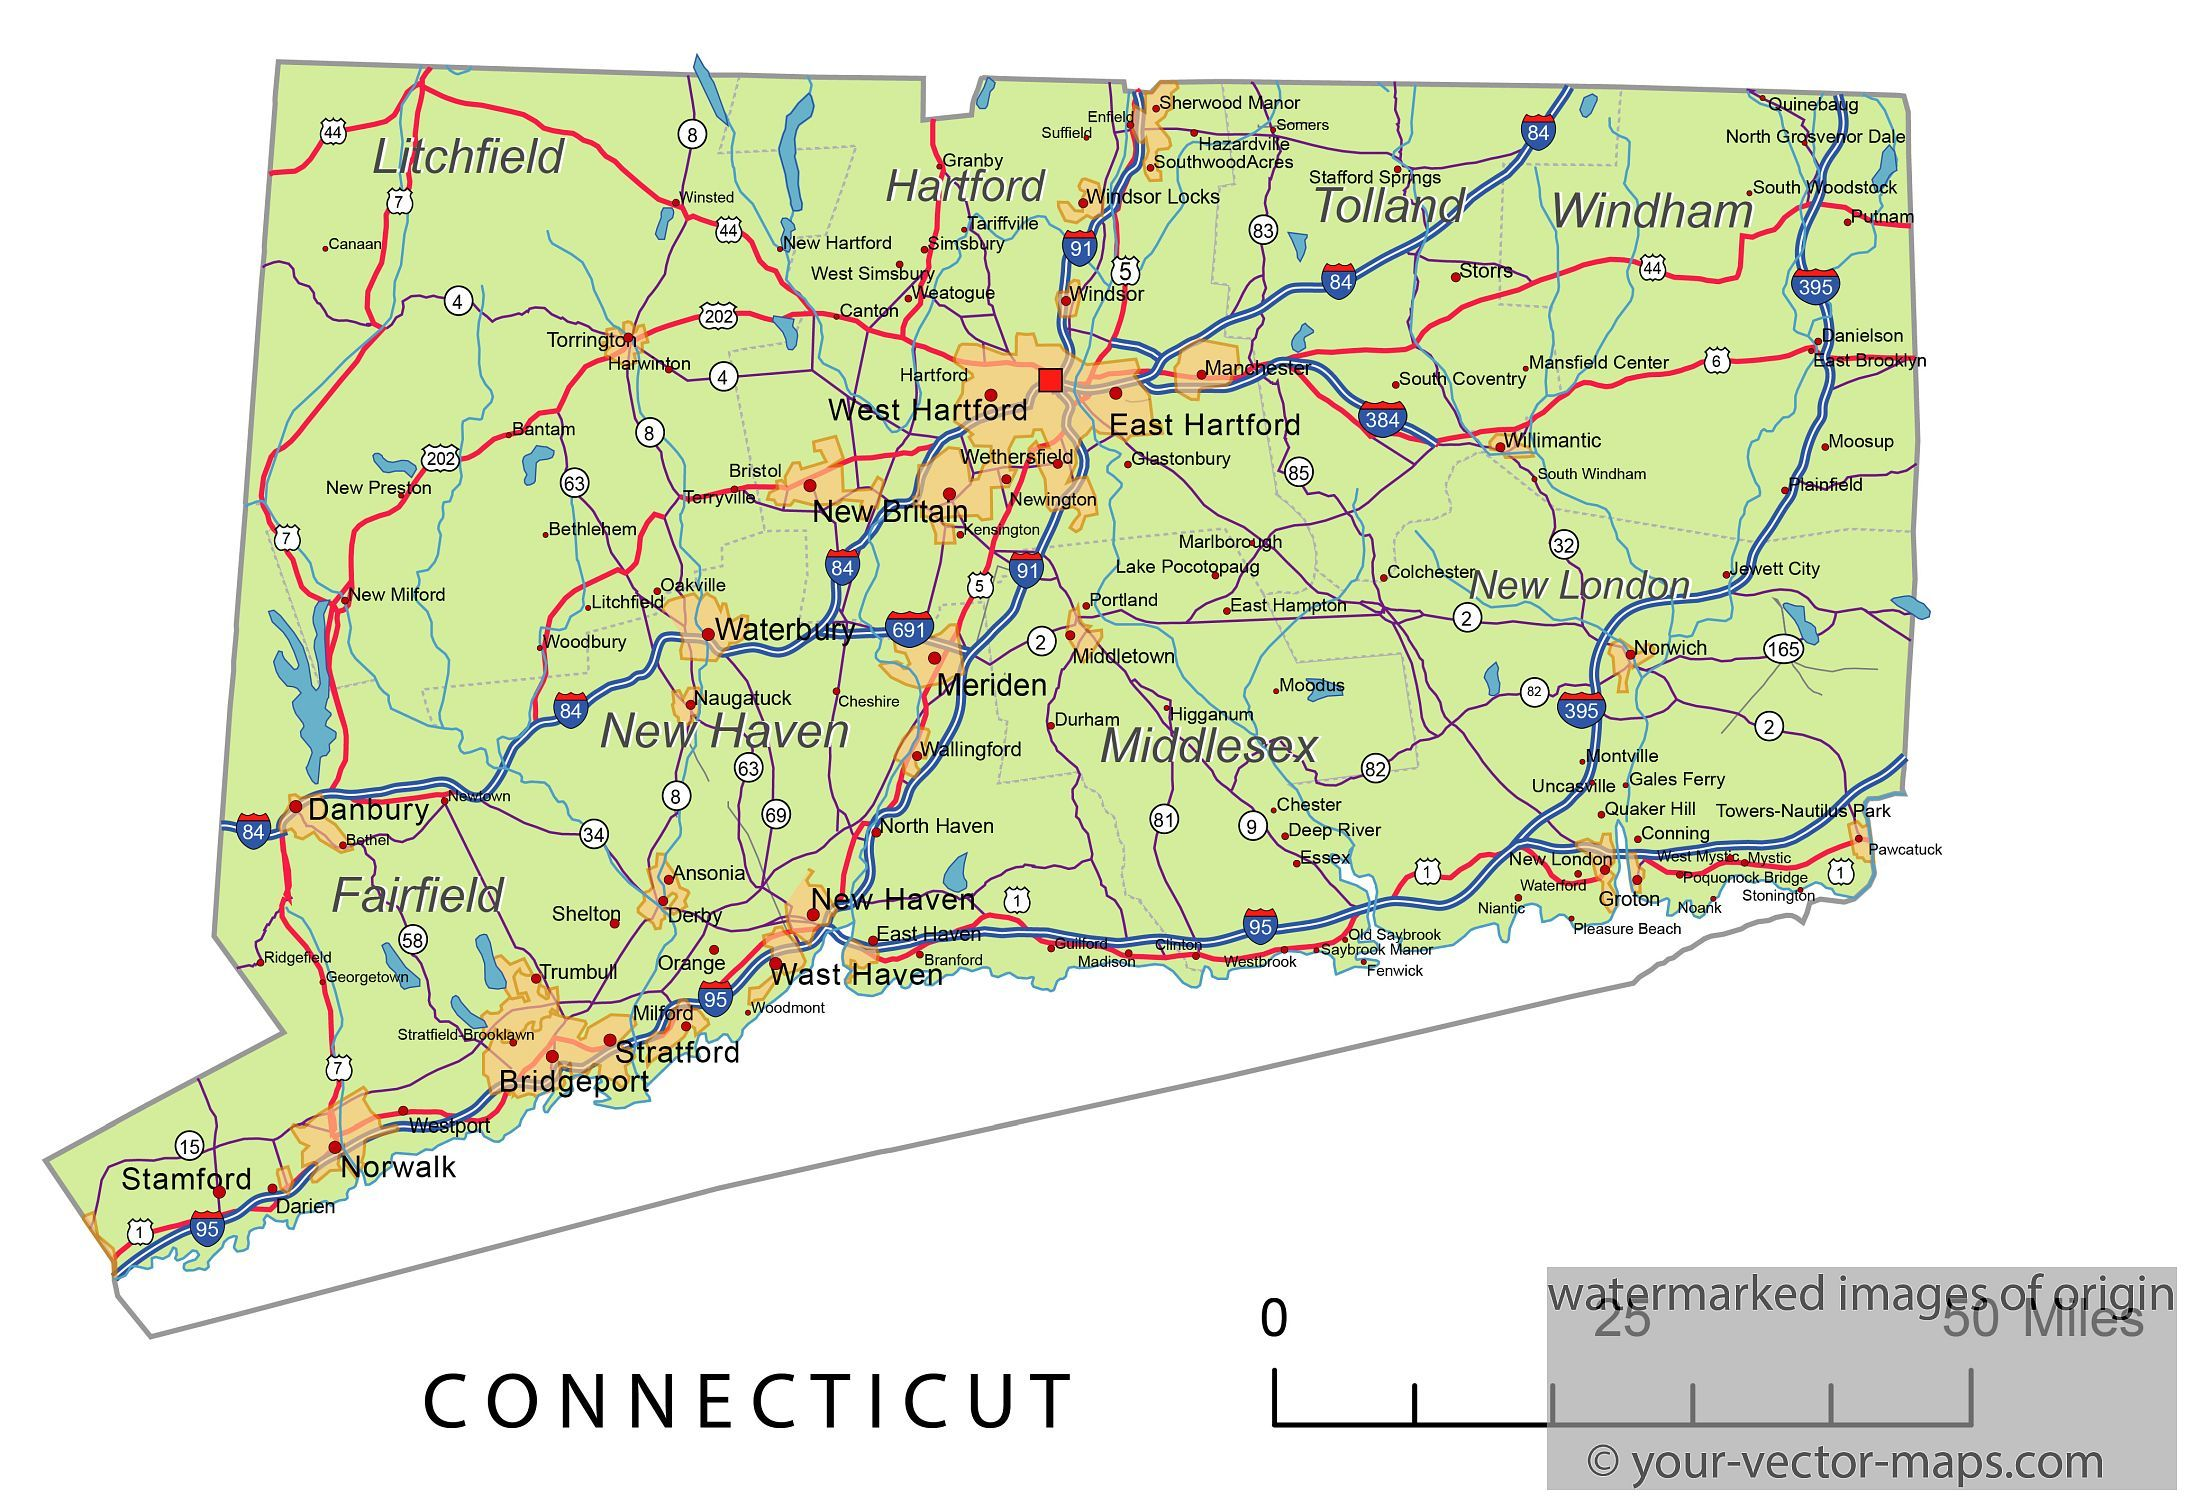 Connecticut State Route Network Connecticut Highways Map Cities Of Connecticut Map Main Routes Rivers Counties Of Col Us State Map U S States Connecticut